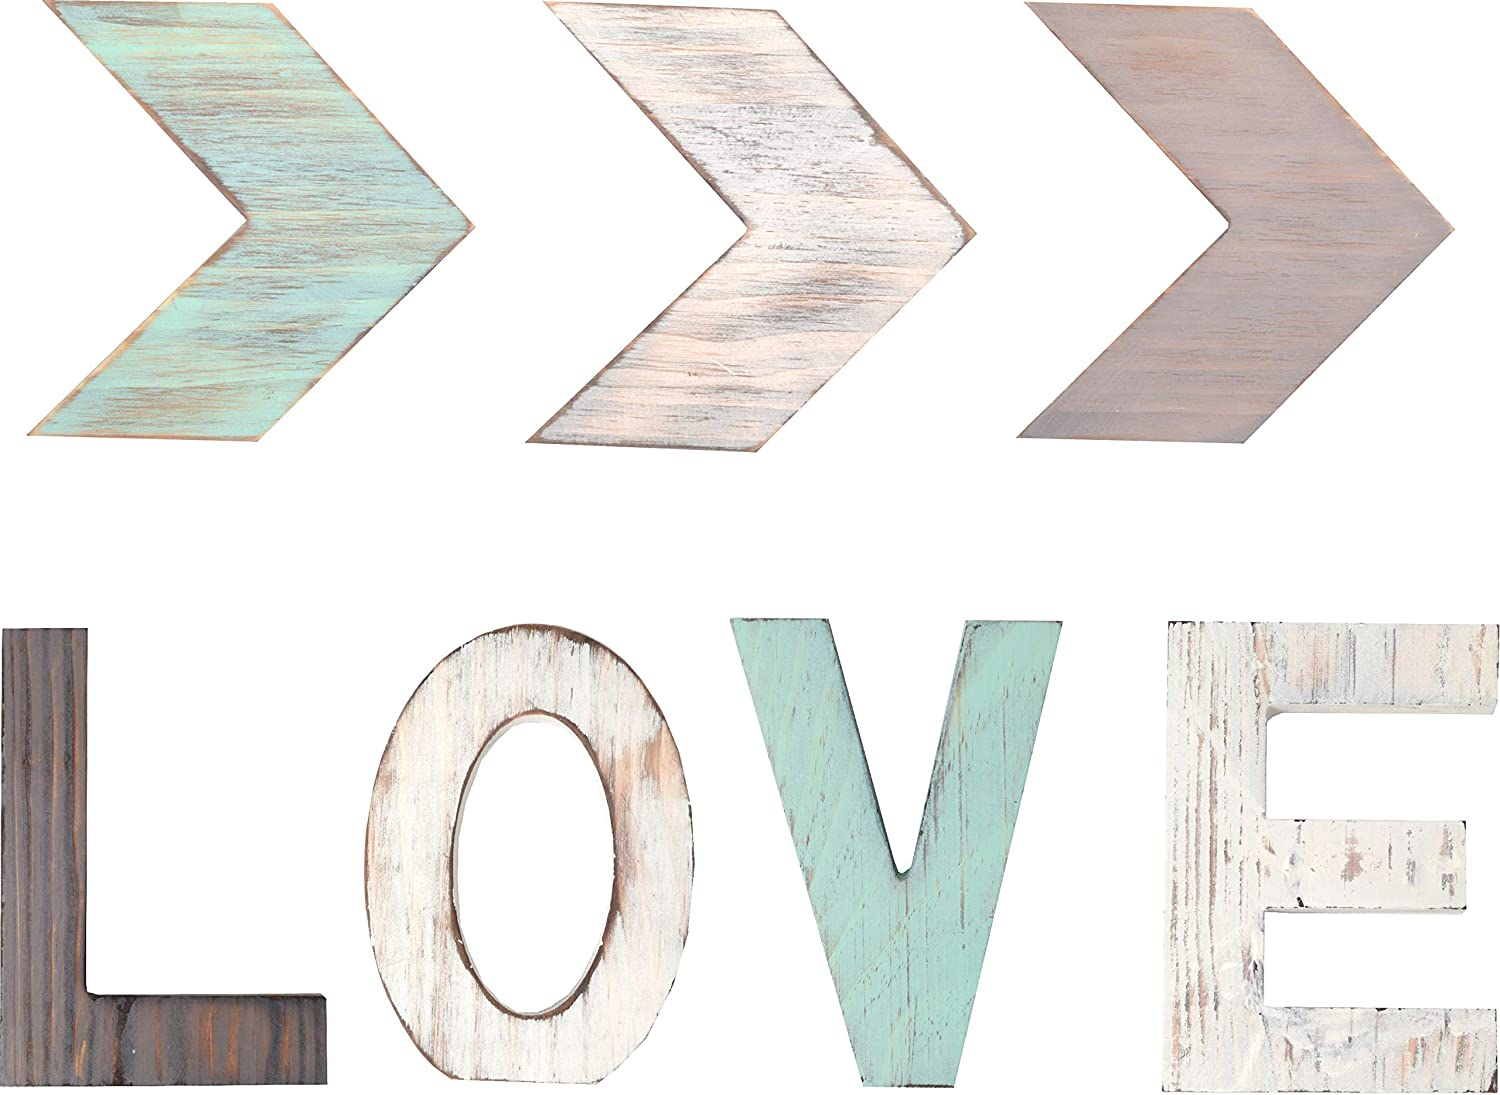 Rustic Wood Love & Three ARROW Décor Signs Home Décor |Freestanding Wooden Letters Cutouts for Home Décor| Multi-Color Wooden Signs | Decorative Word Signs | for Kitchen Shelf, Farmhouse Décor, Living